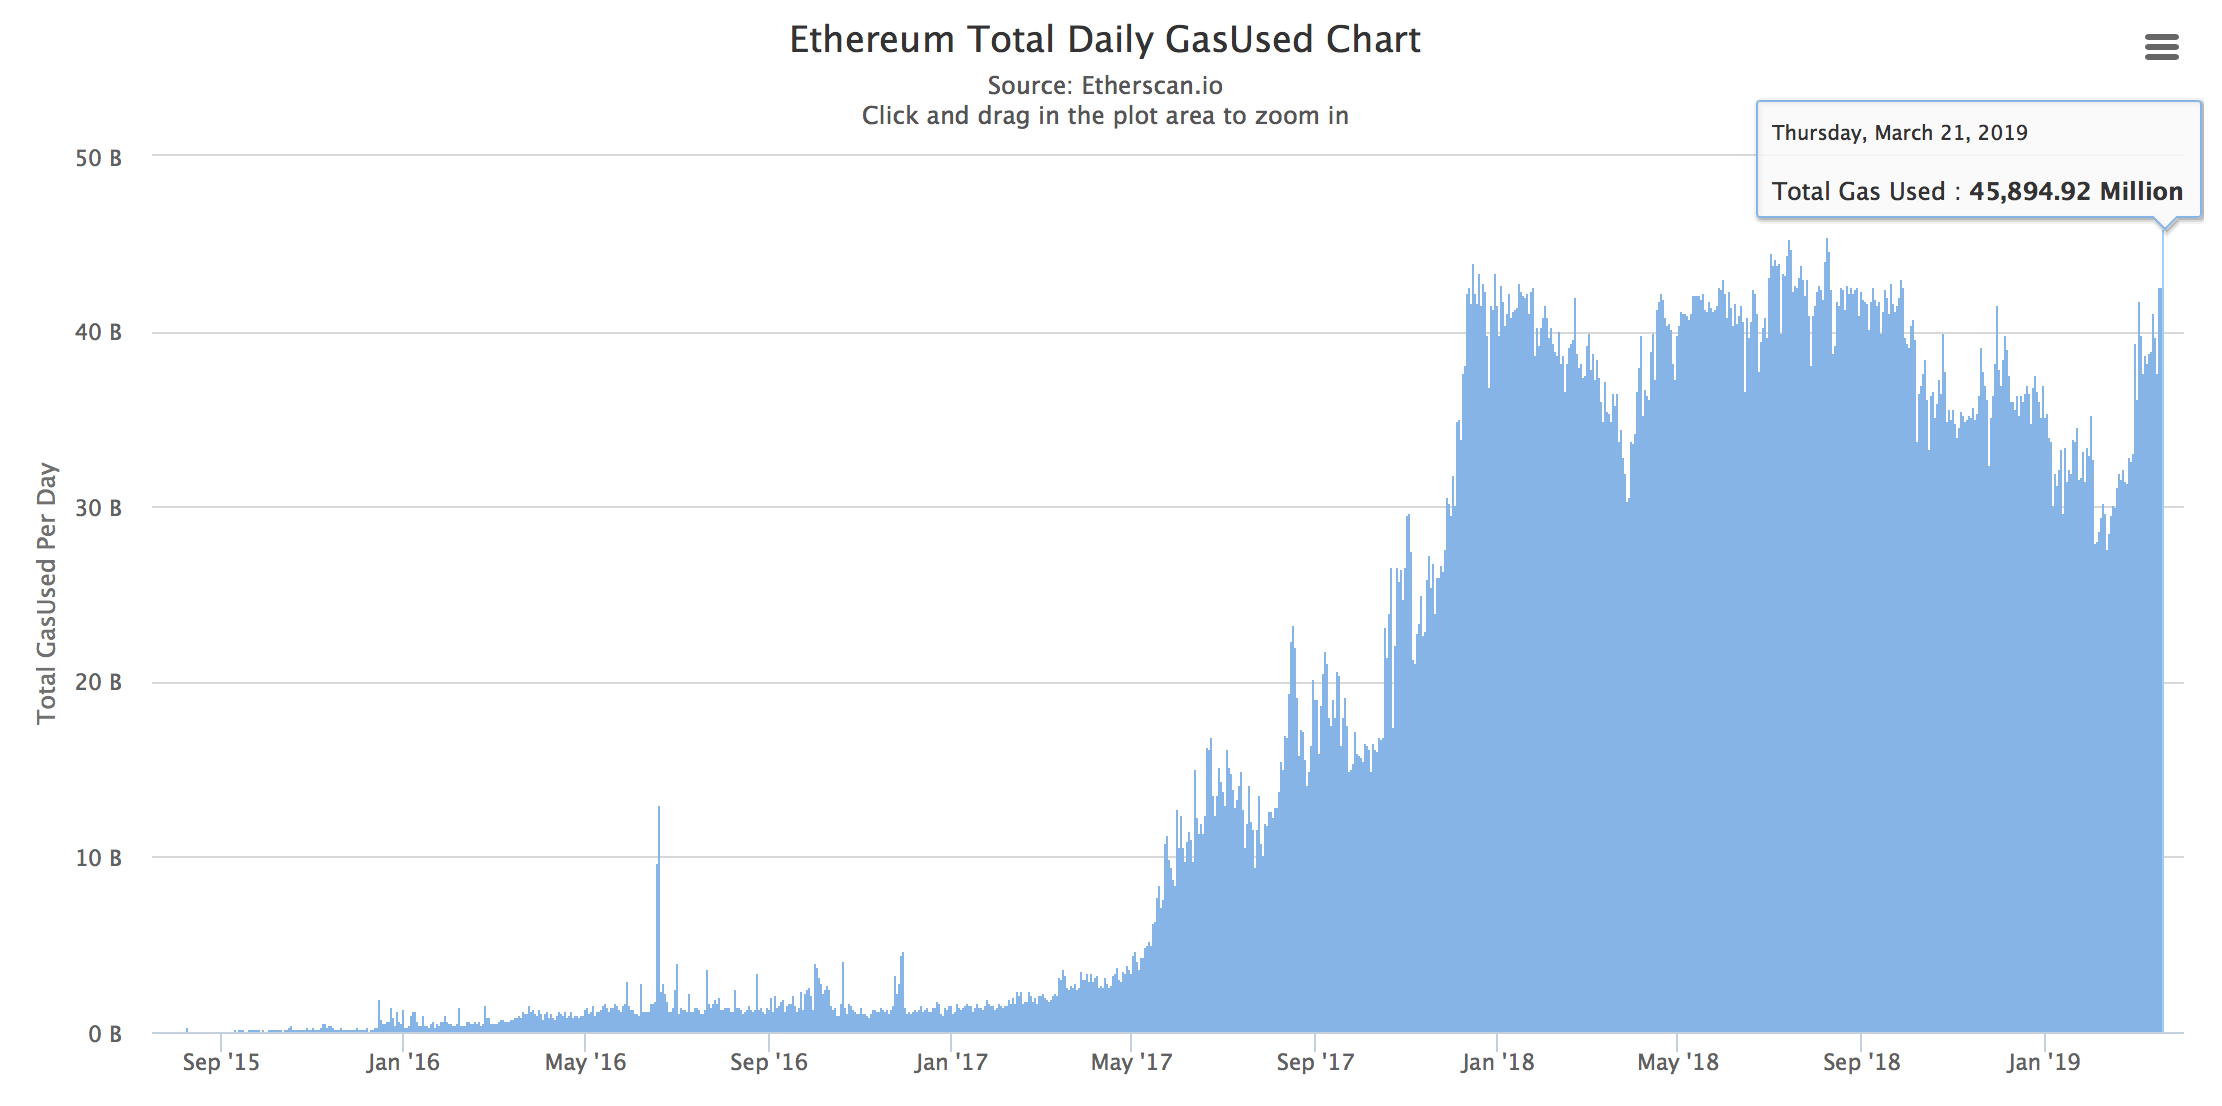 Ethereum Gas Usage Reaches All-Time High, Transactions Highest in Six Months